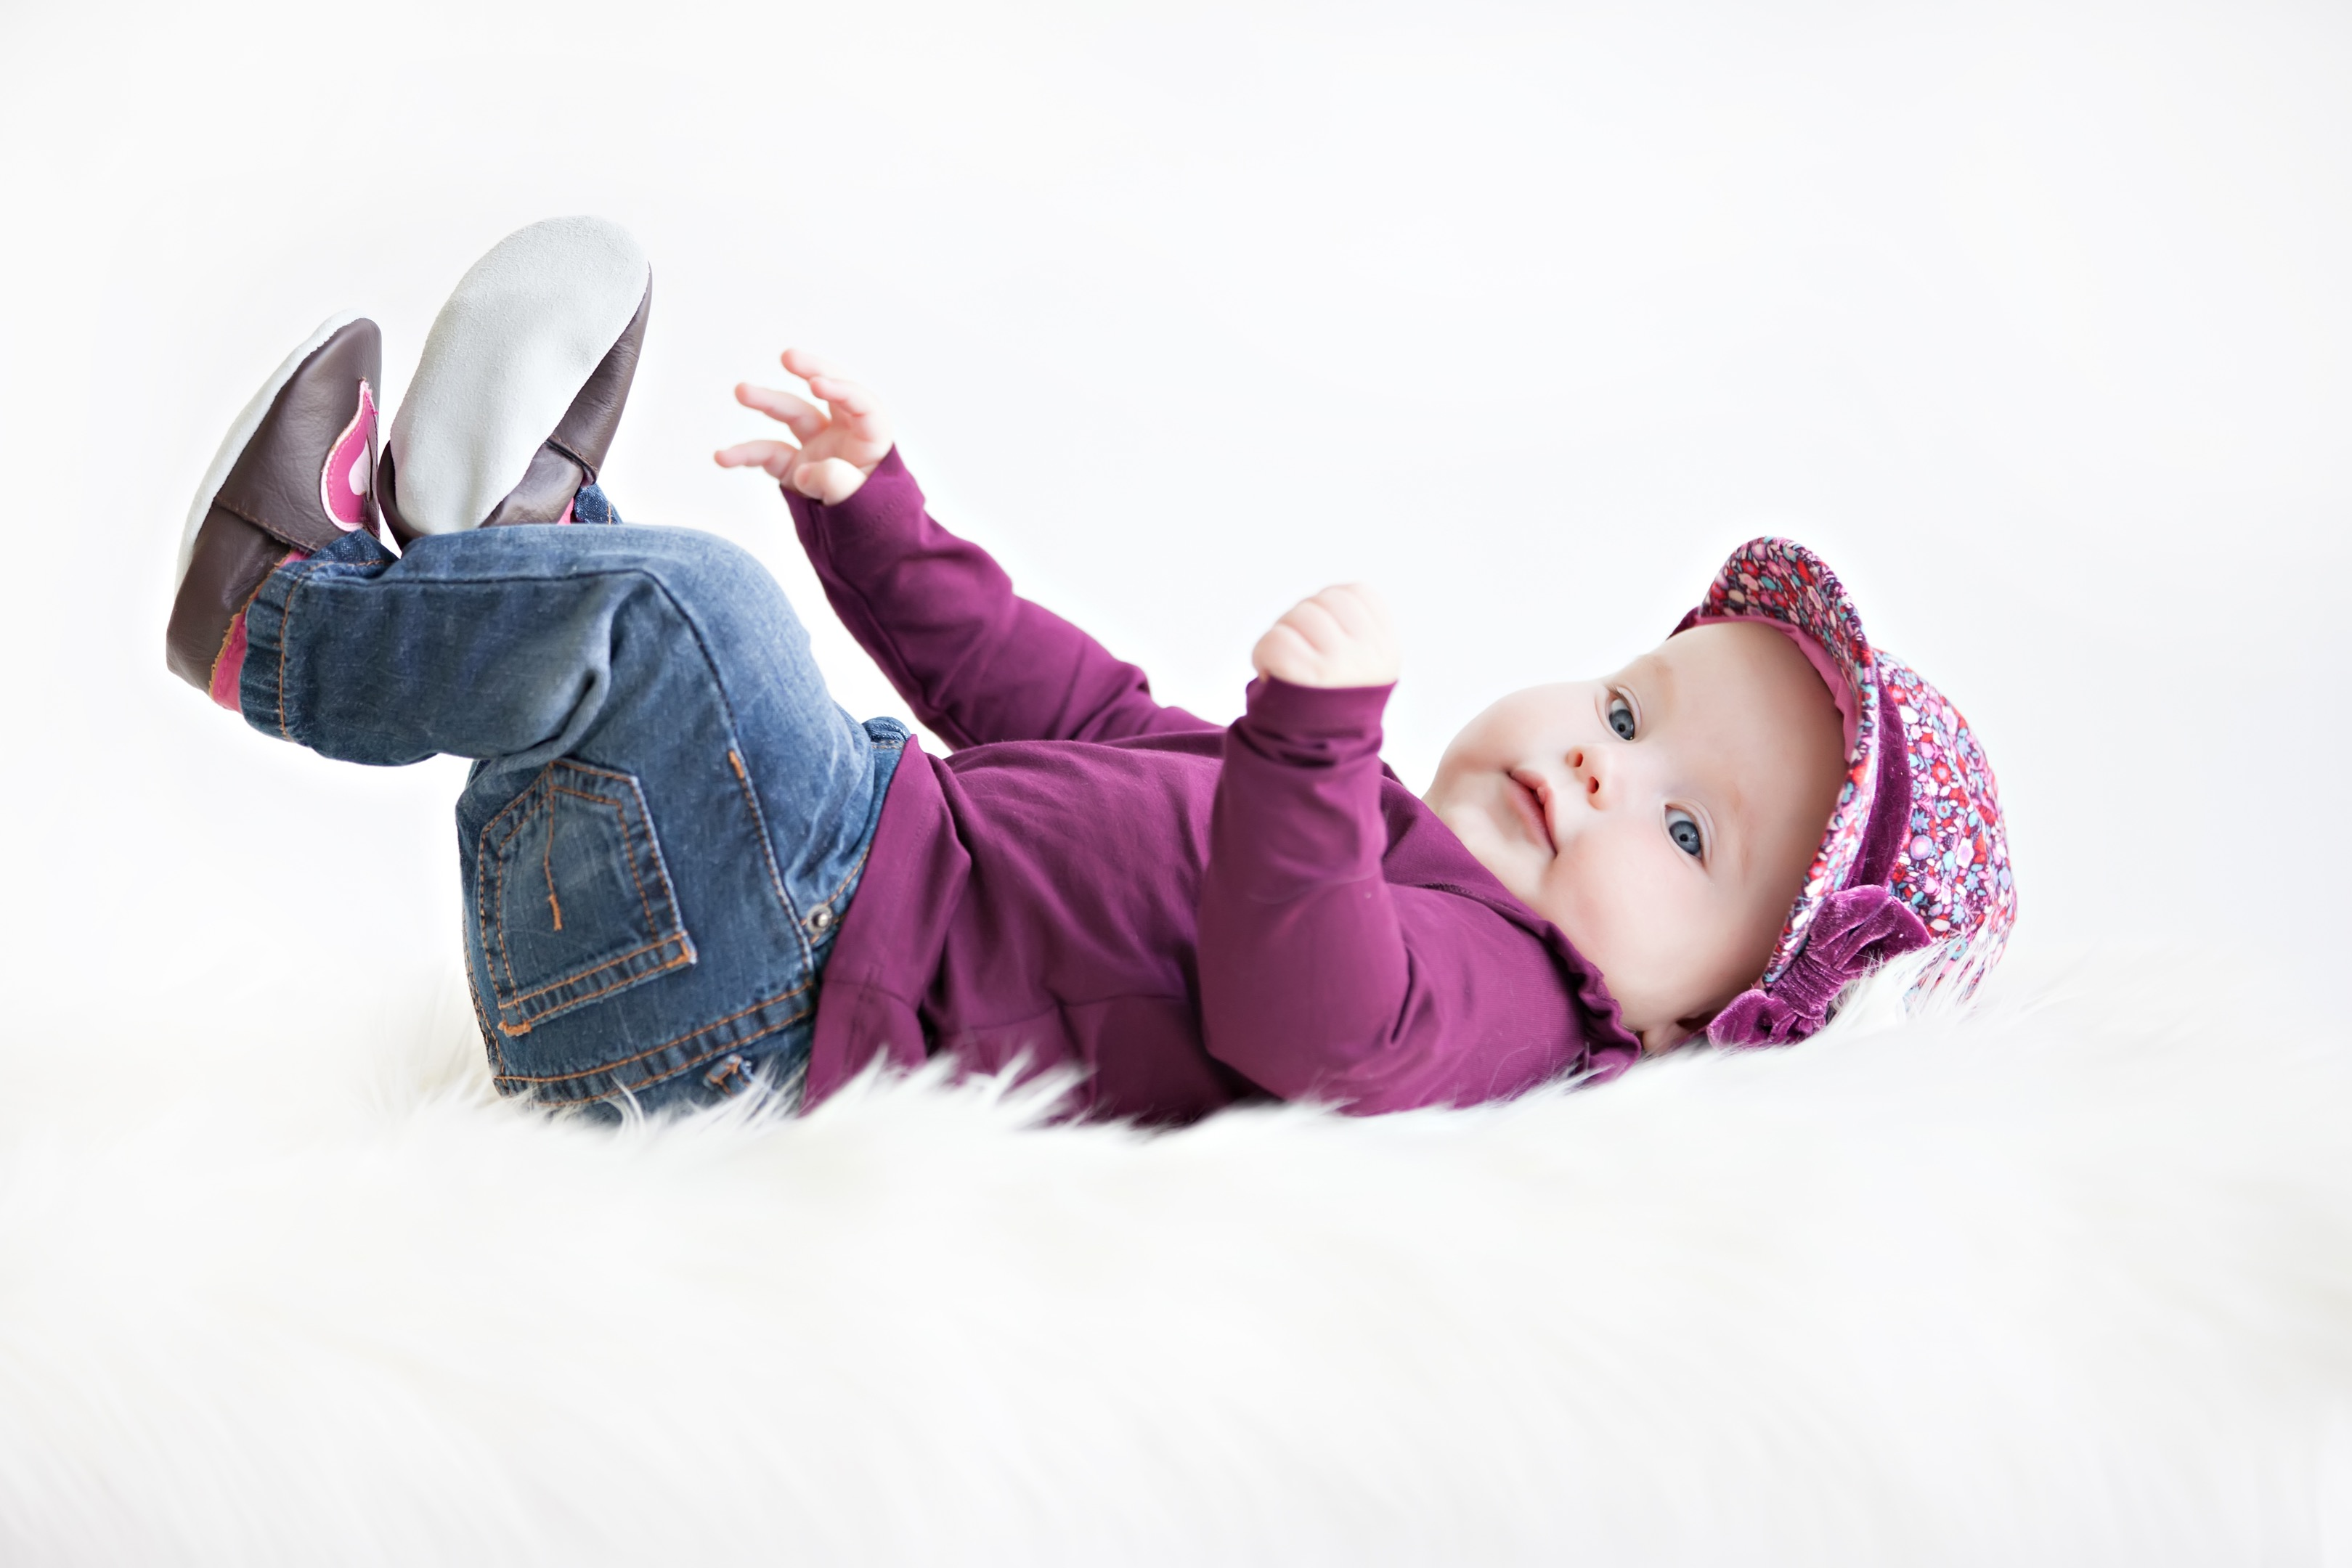 BabySteps model Linde met sweat hearts slofjes